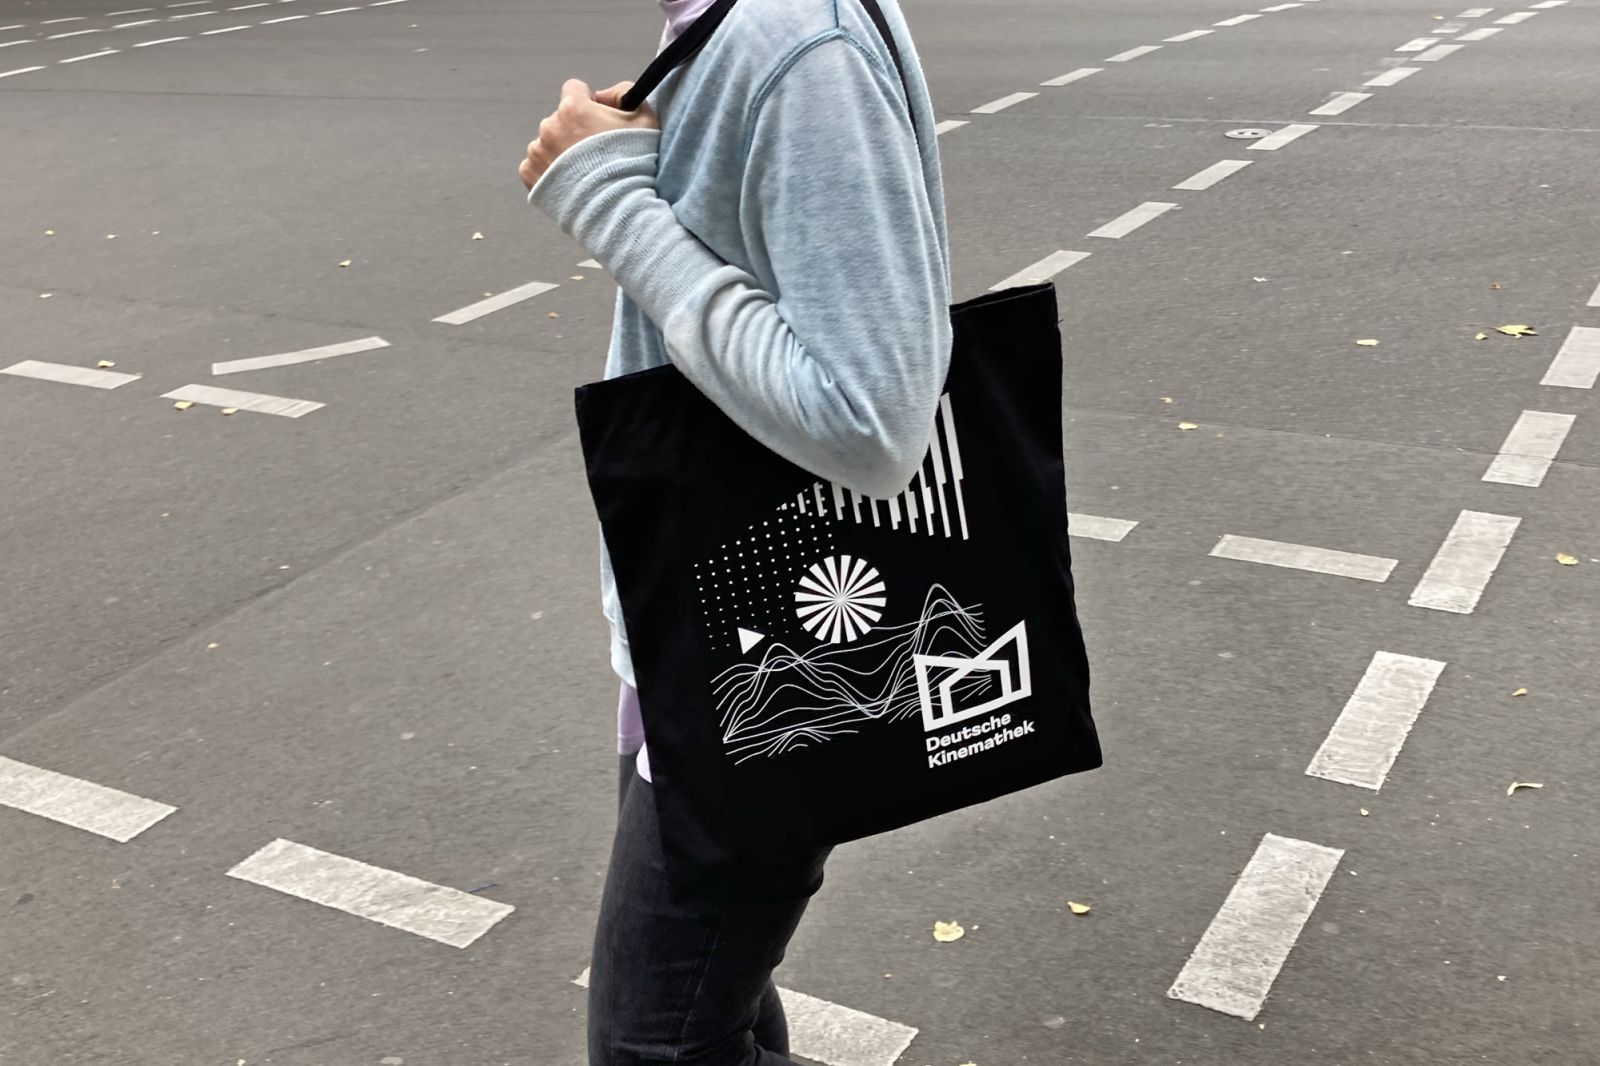 A person carrying the Deutsche Kinemathek bag